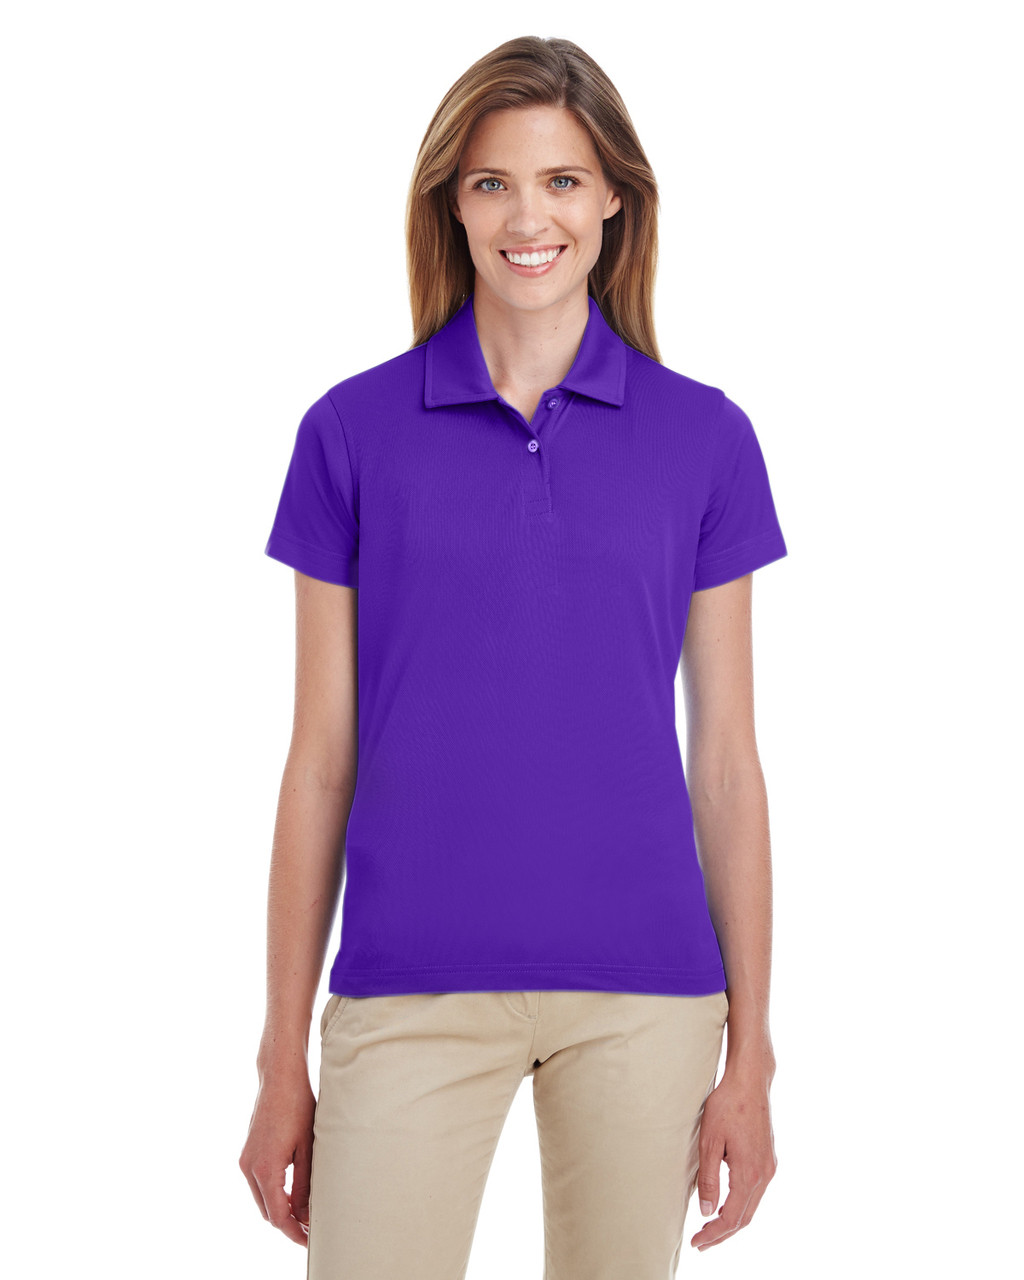 Sport Purple - TT21W Team 365 Ladies' Command Snag Protection Polo Shirt